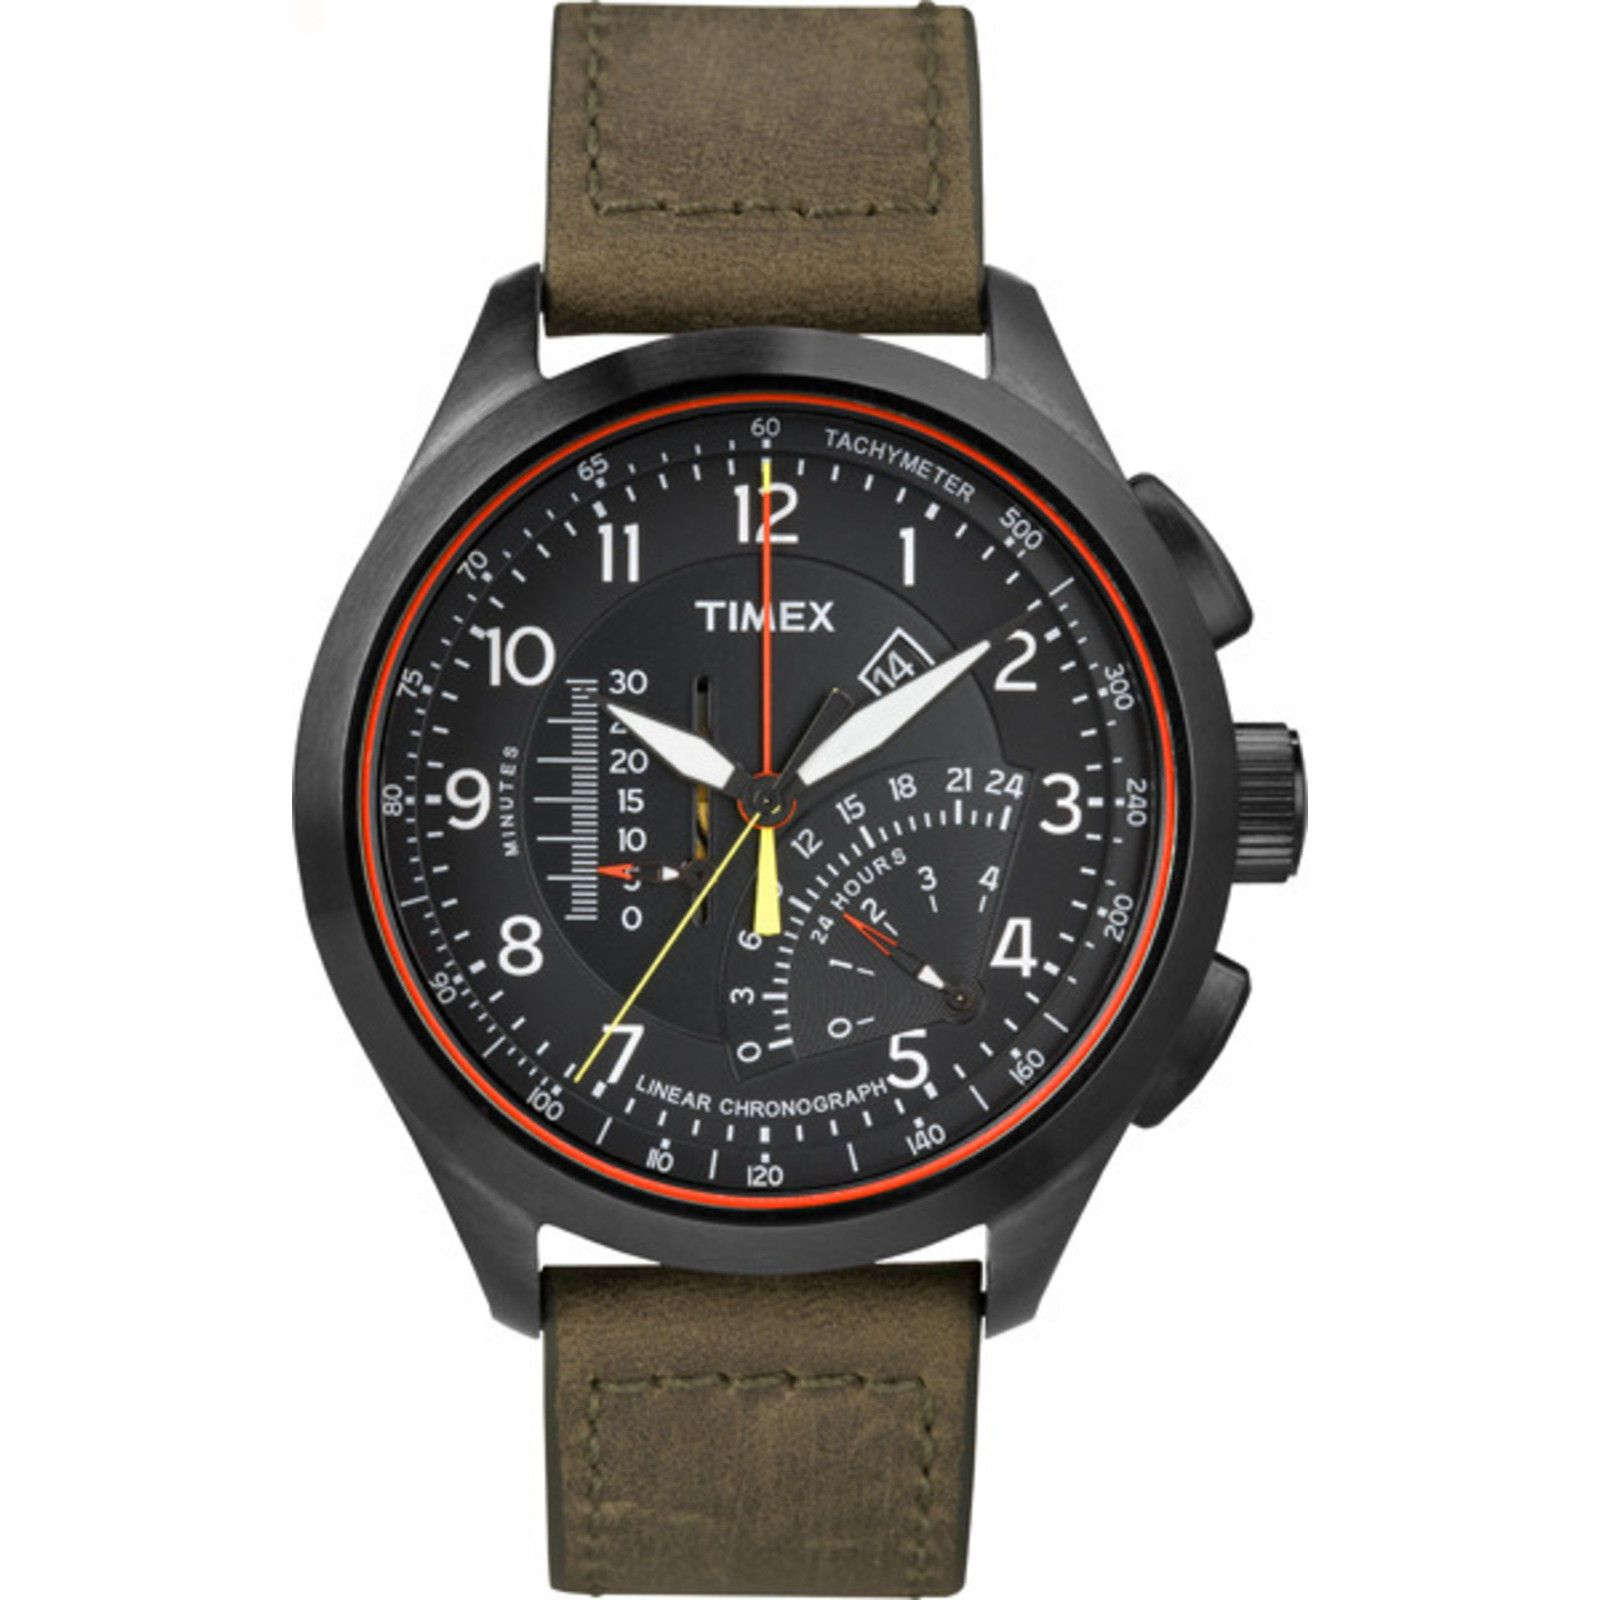 Intelligent Quartz Linear Chronograph  bd9d362d1735